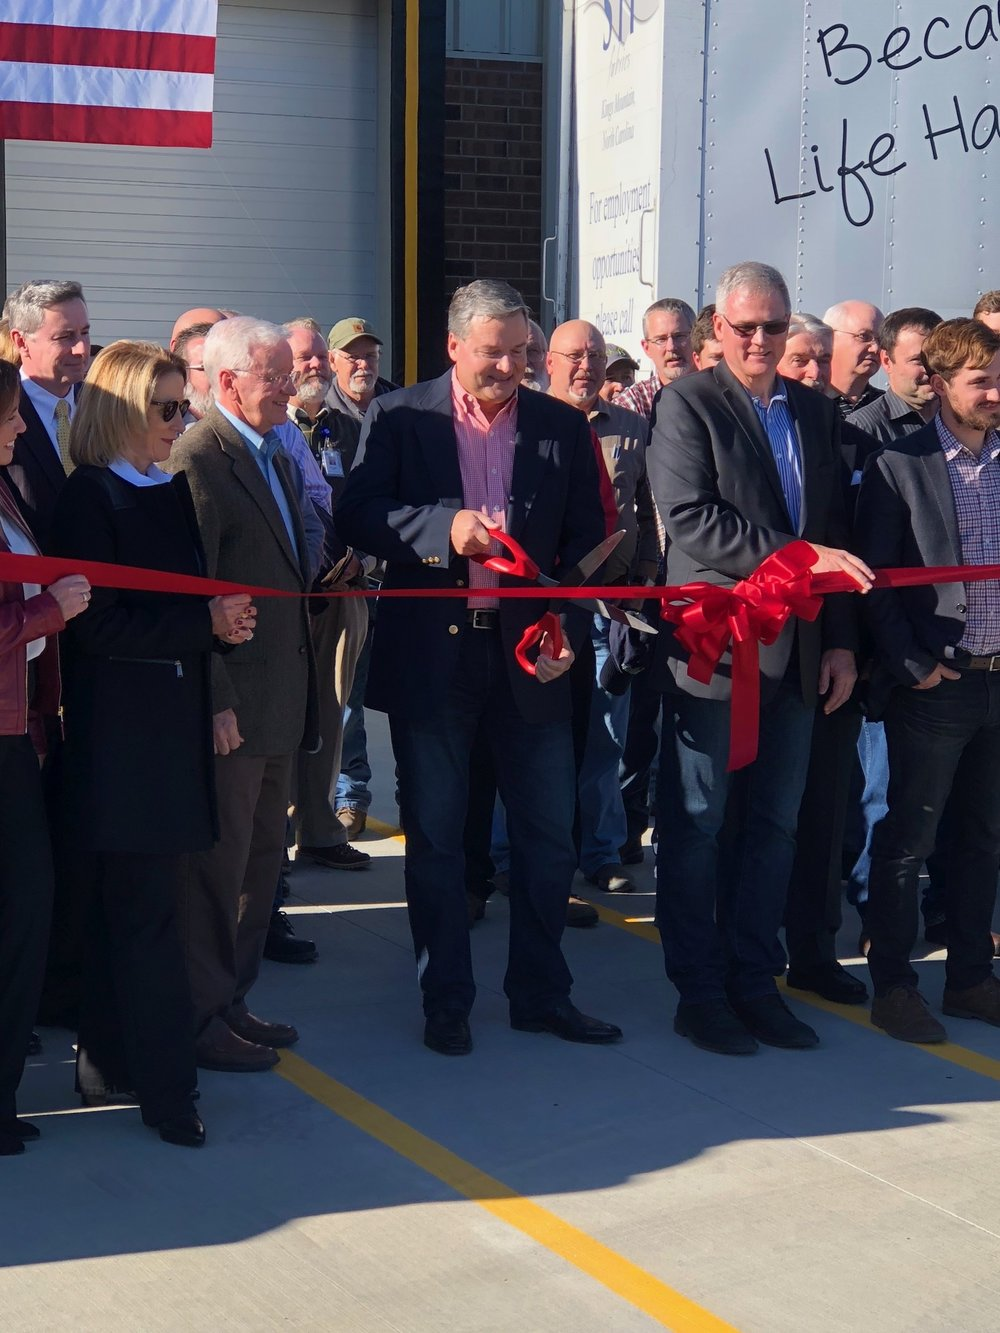 Mark Hovis , COO, cutting the ribbon!